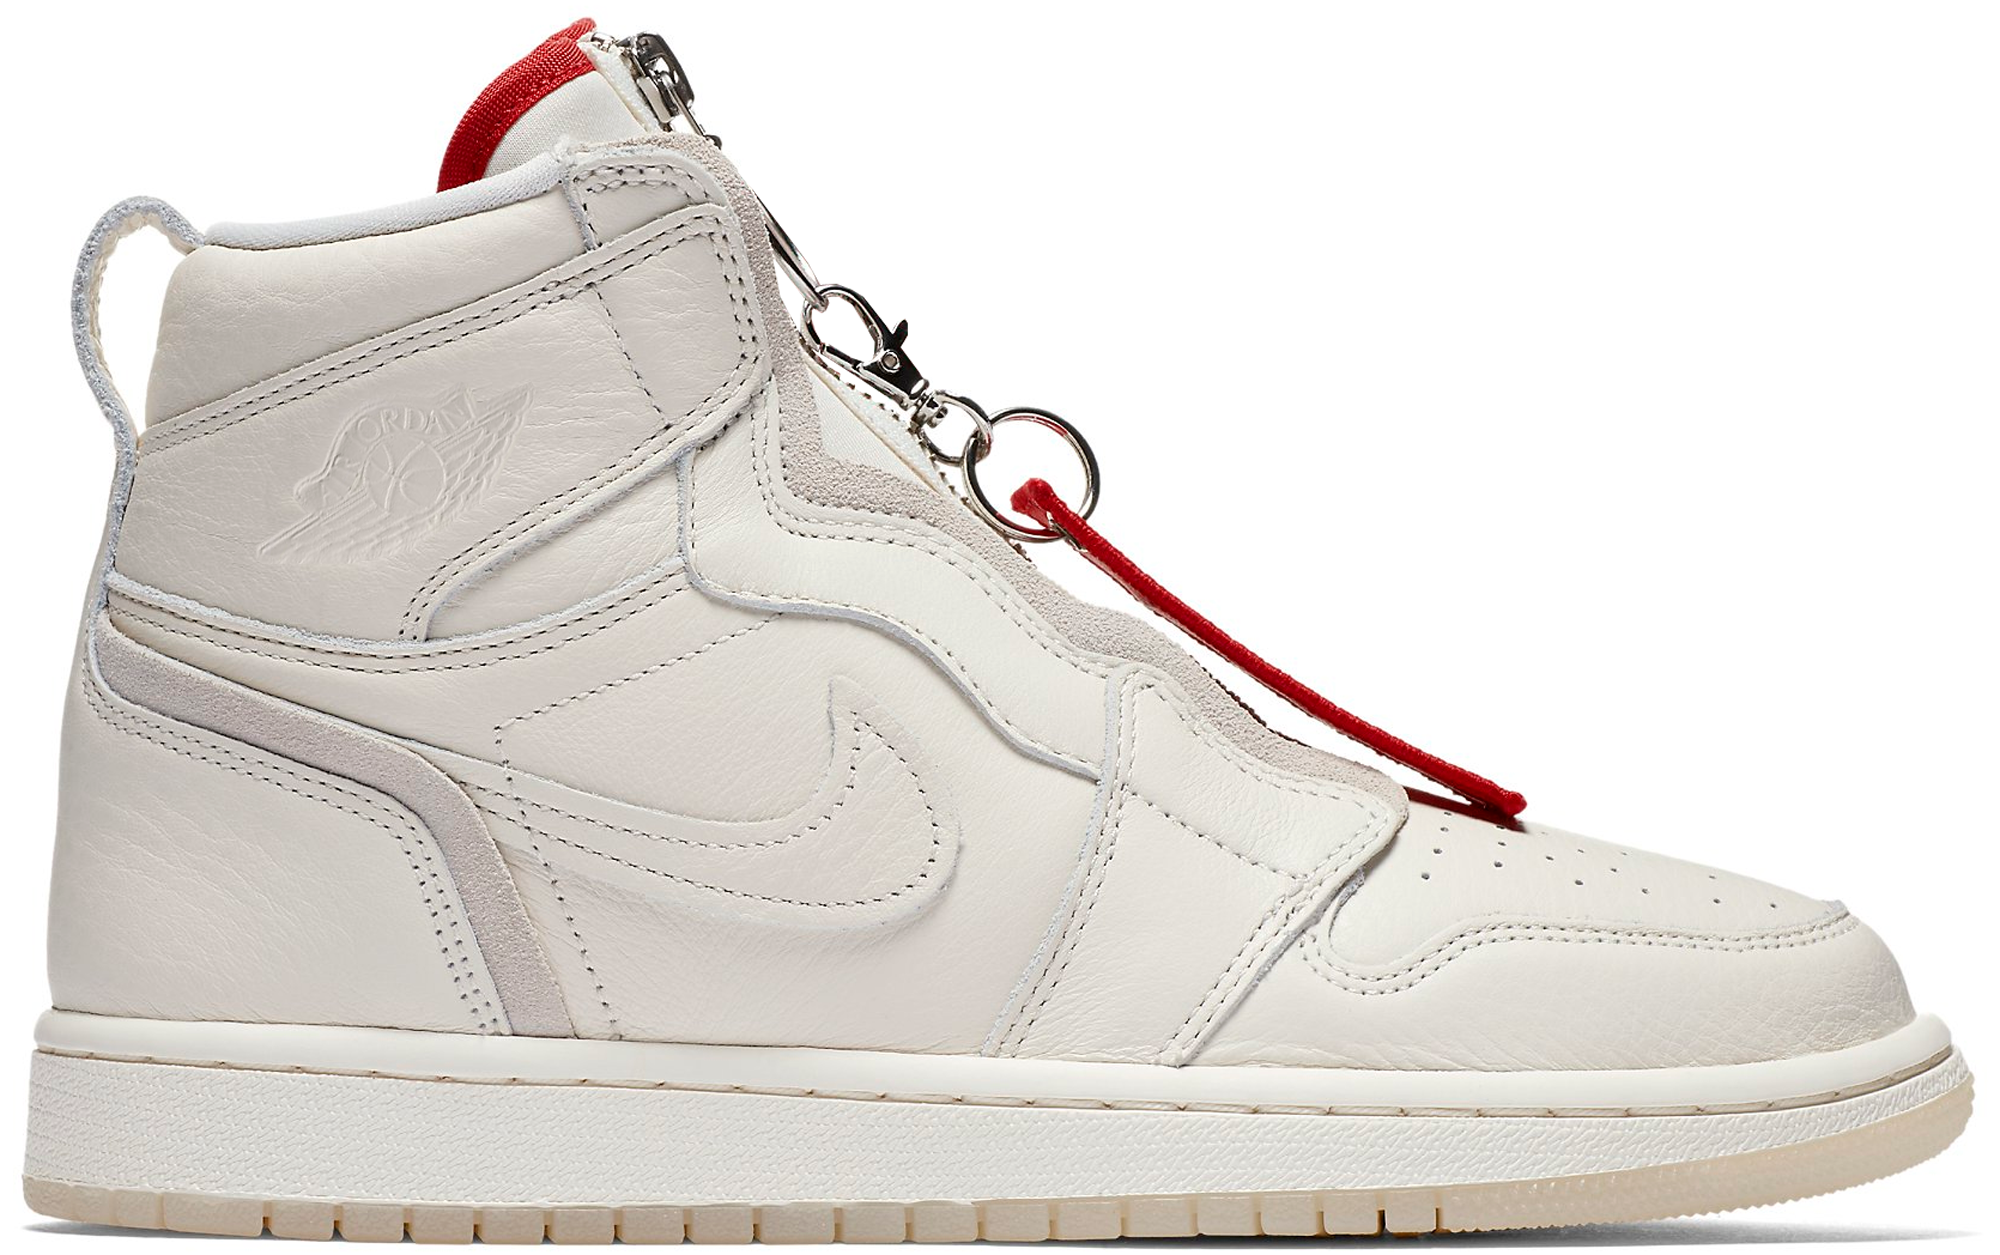 10b5c460b84b Those looking for a pair can buy them on StockX today. Got a pair to sell   List this women s Air Jordan 1 High Zip AWOK Sail on the StockX marketplace  now.